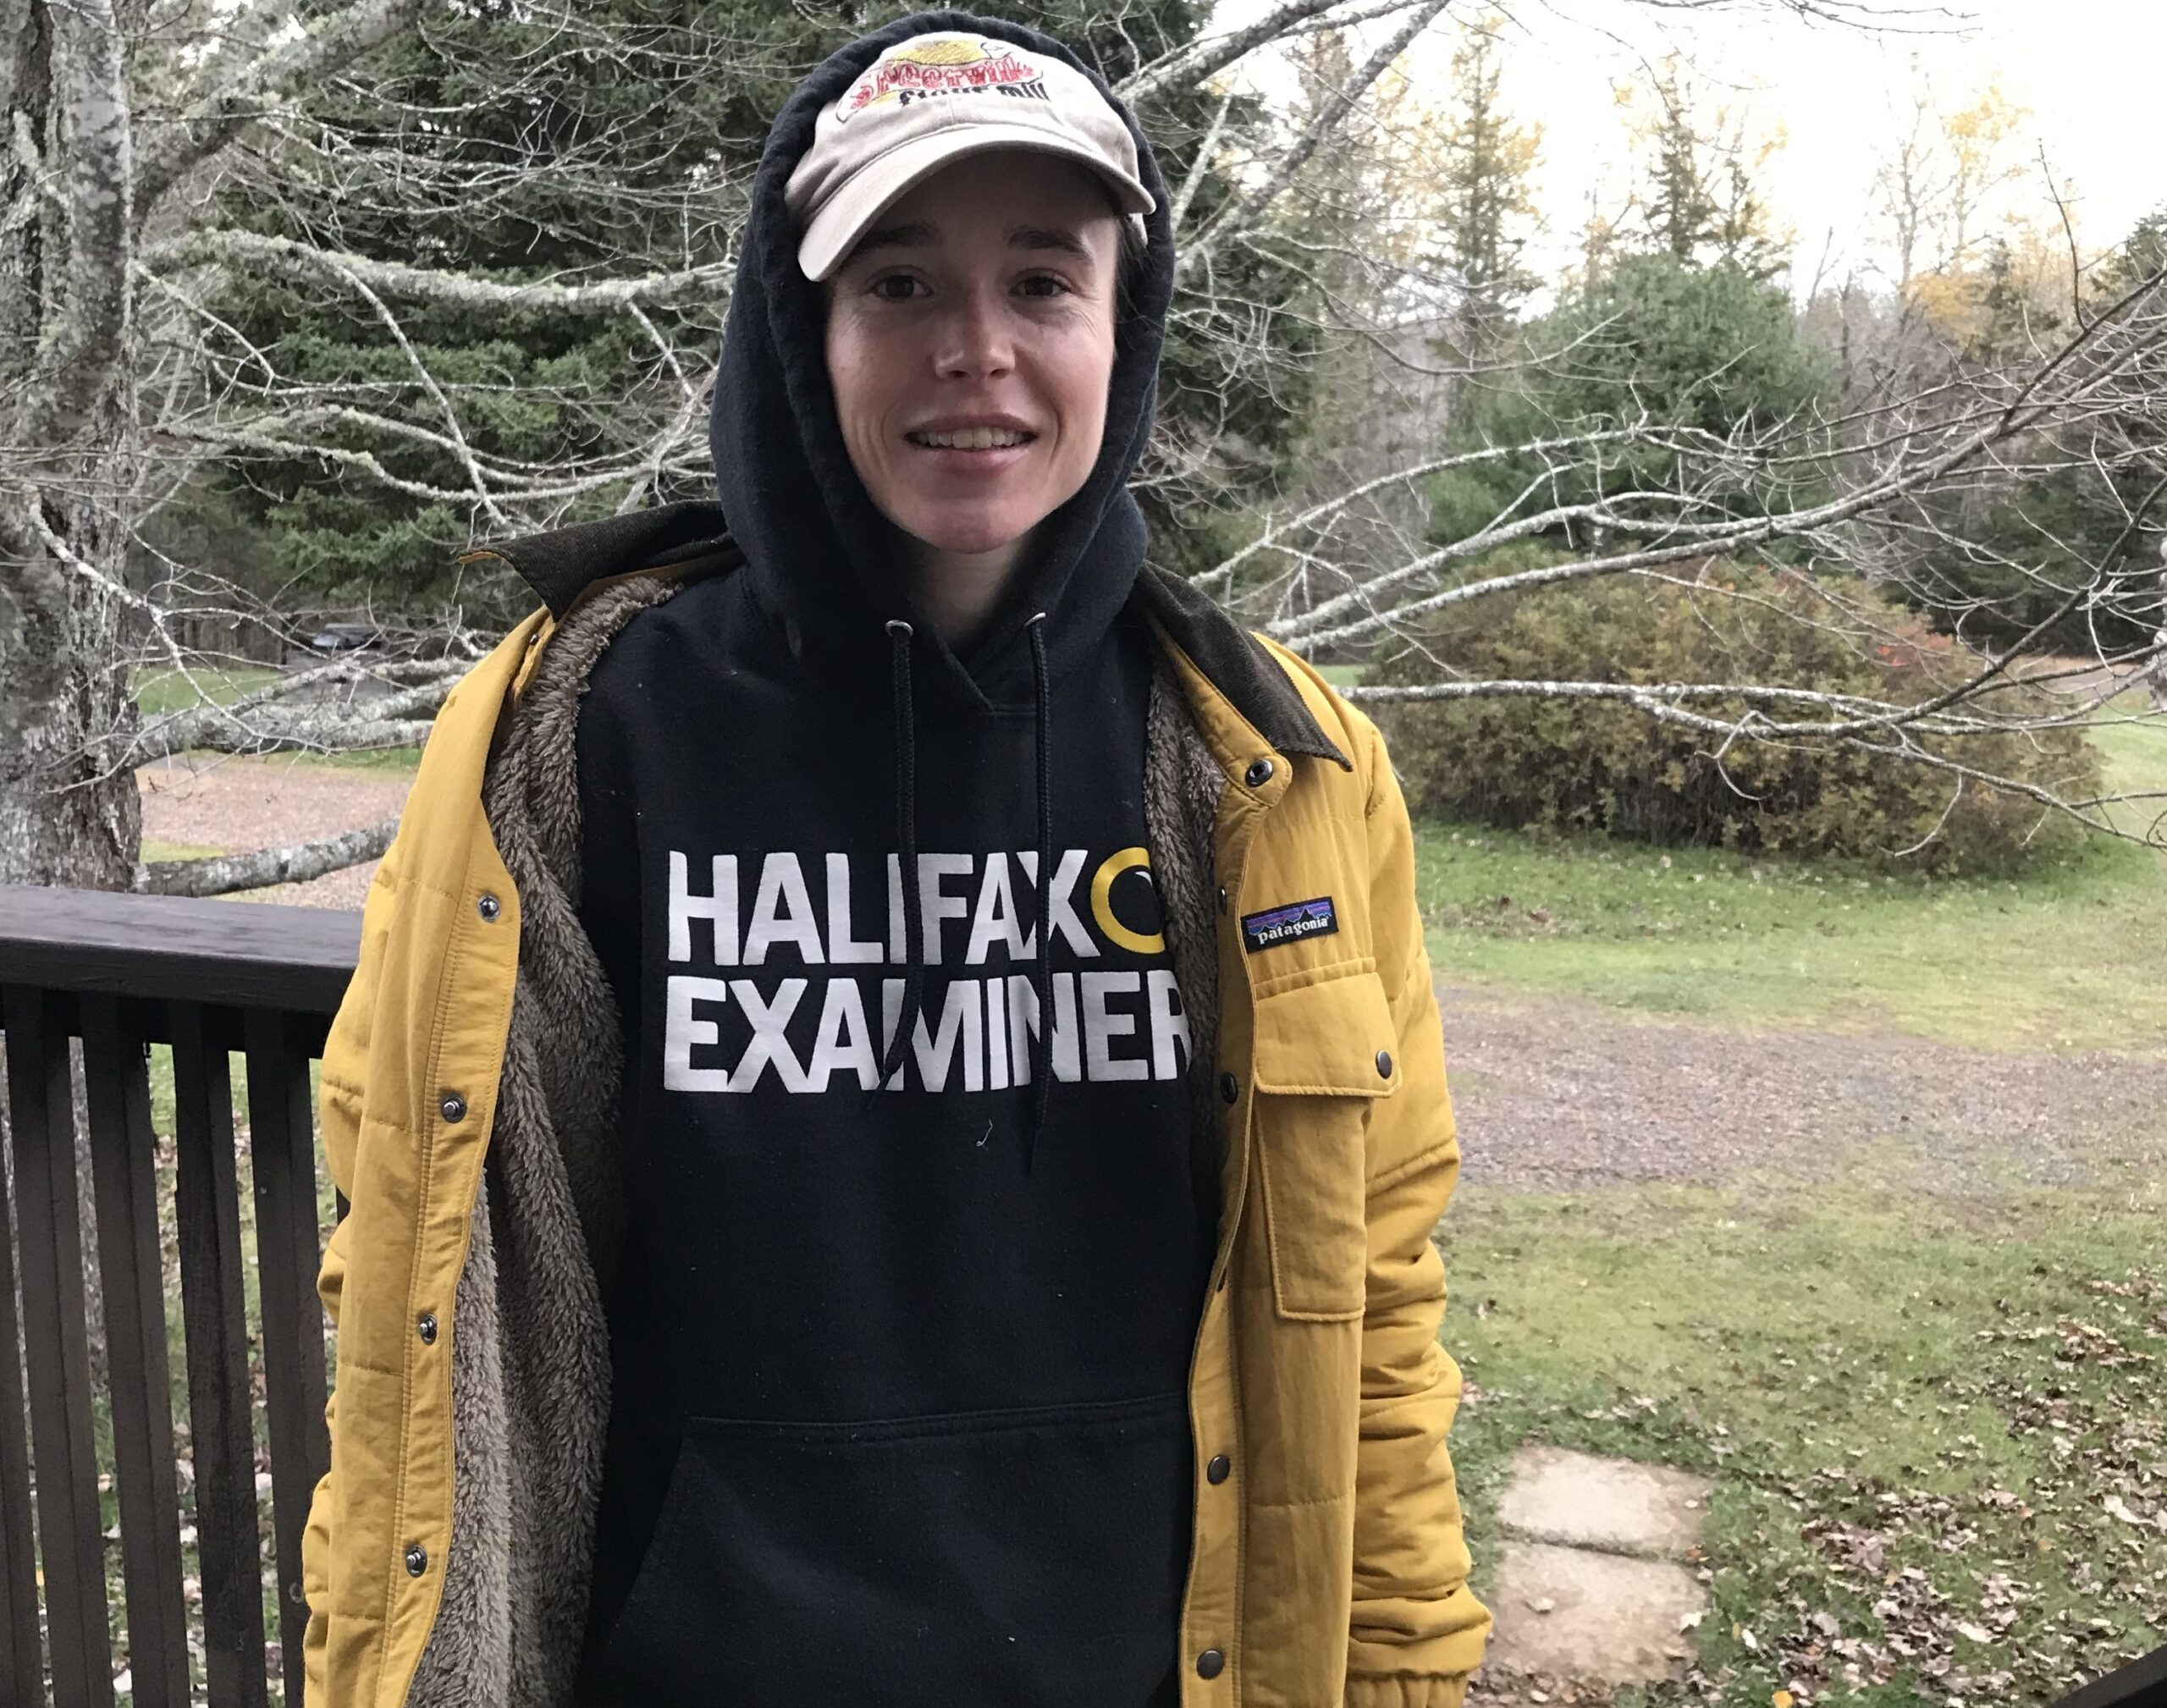 Elliot Page in a Halifax Examiner hoodie and ballcap